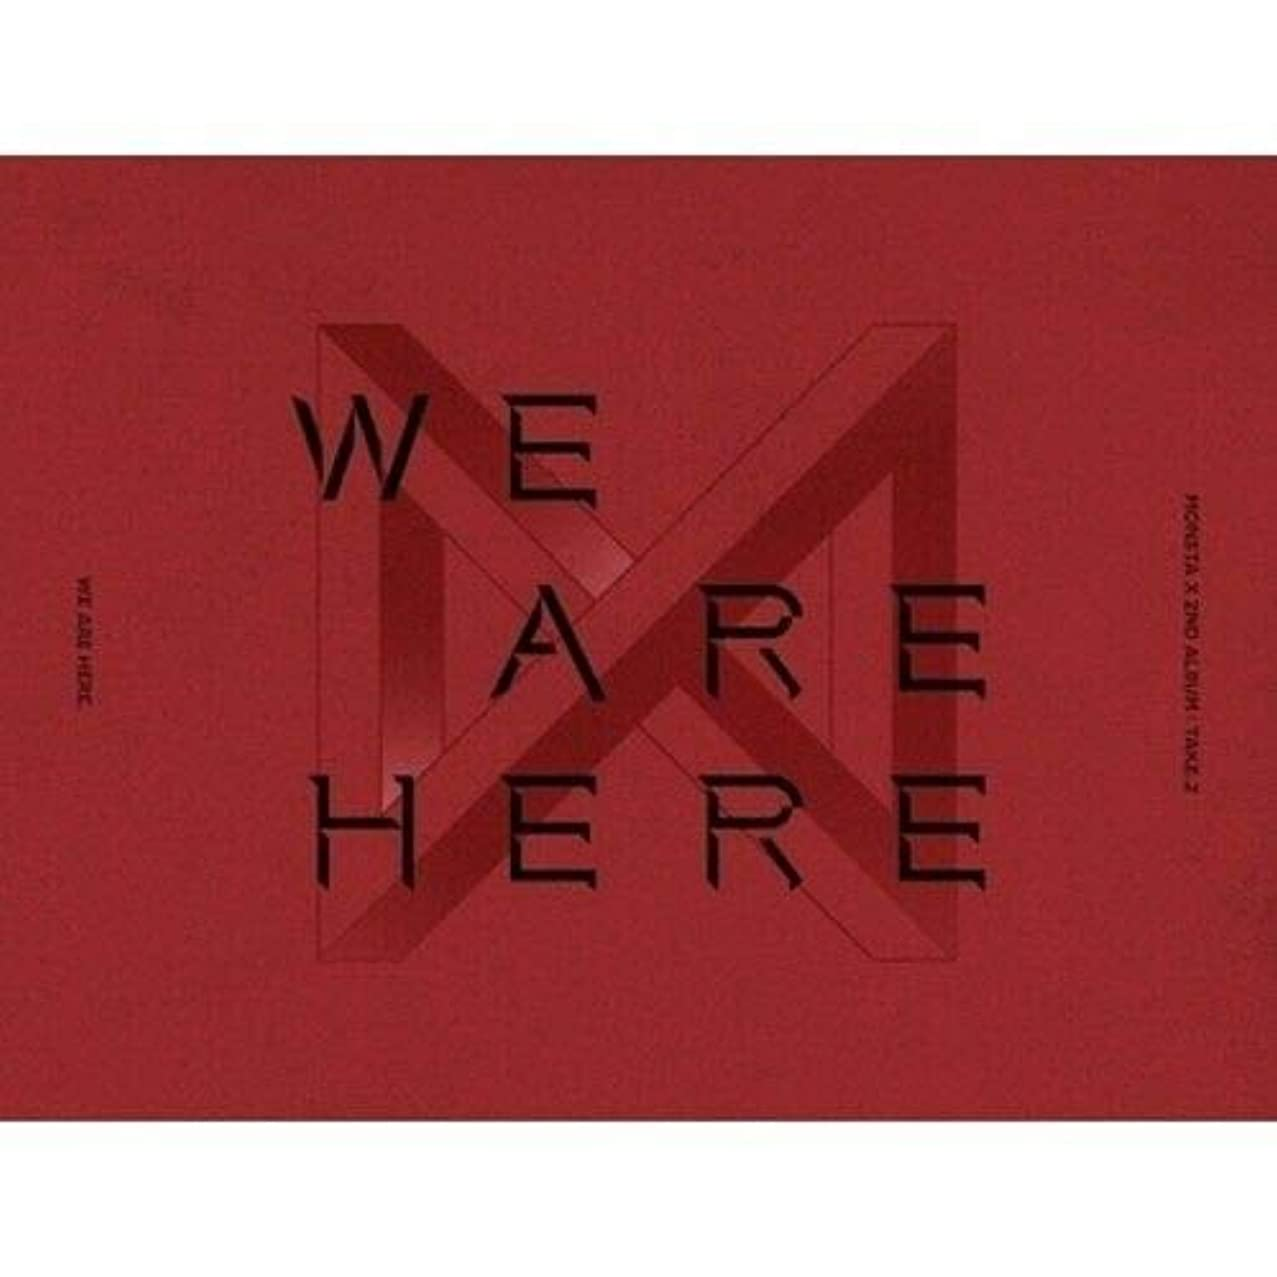 Monsta X - [Take.2 We are Here] 2nd Album 4 Ver Set CD+1p Poster+134p Booklet+PhotoCard+Pre-Order Benefit(1p Unit PhotoCard+1p Clear Special Card+1p Polaroid)+Extra PhotoCard+Tracking K-POP Sealed